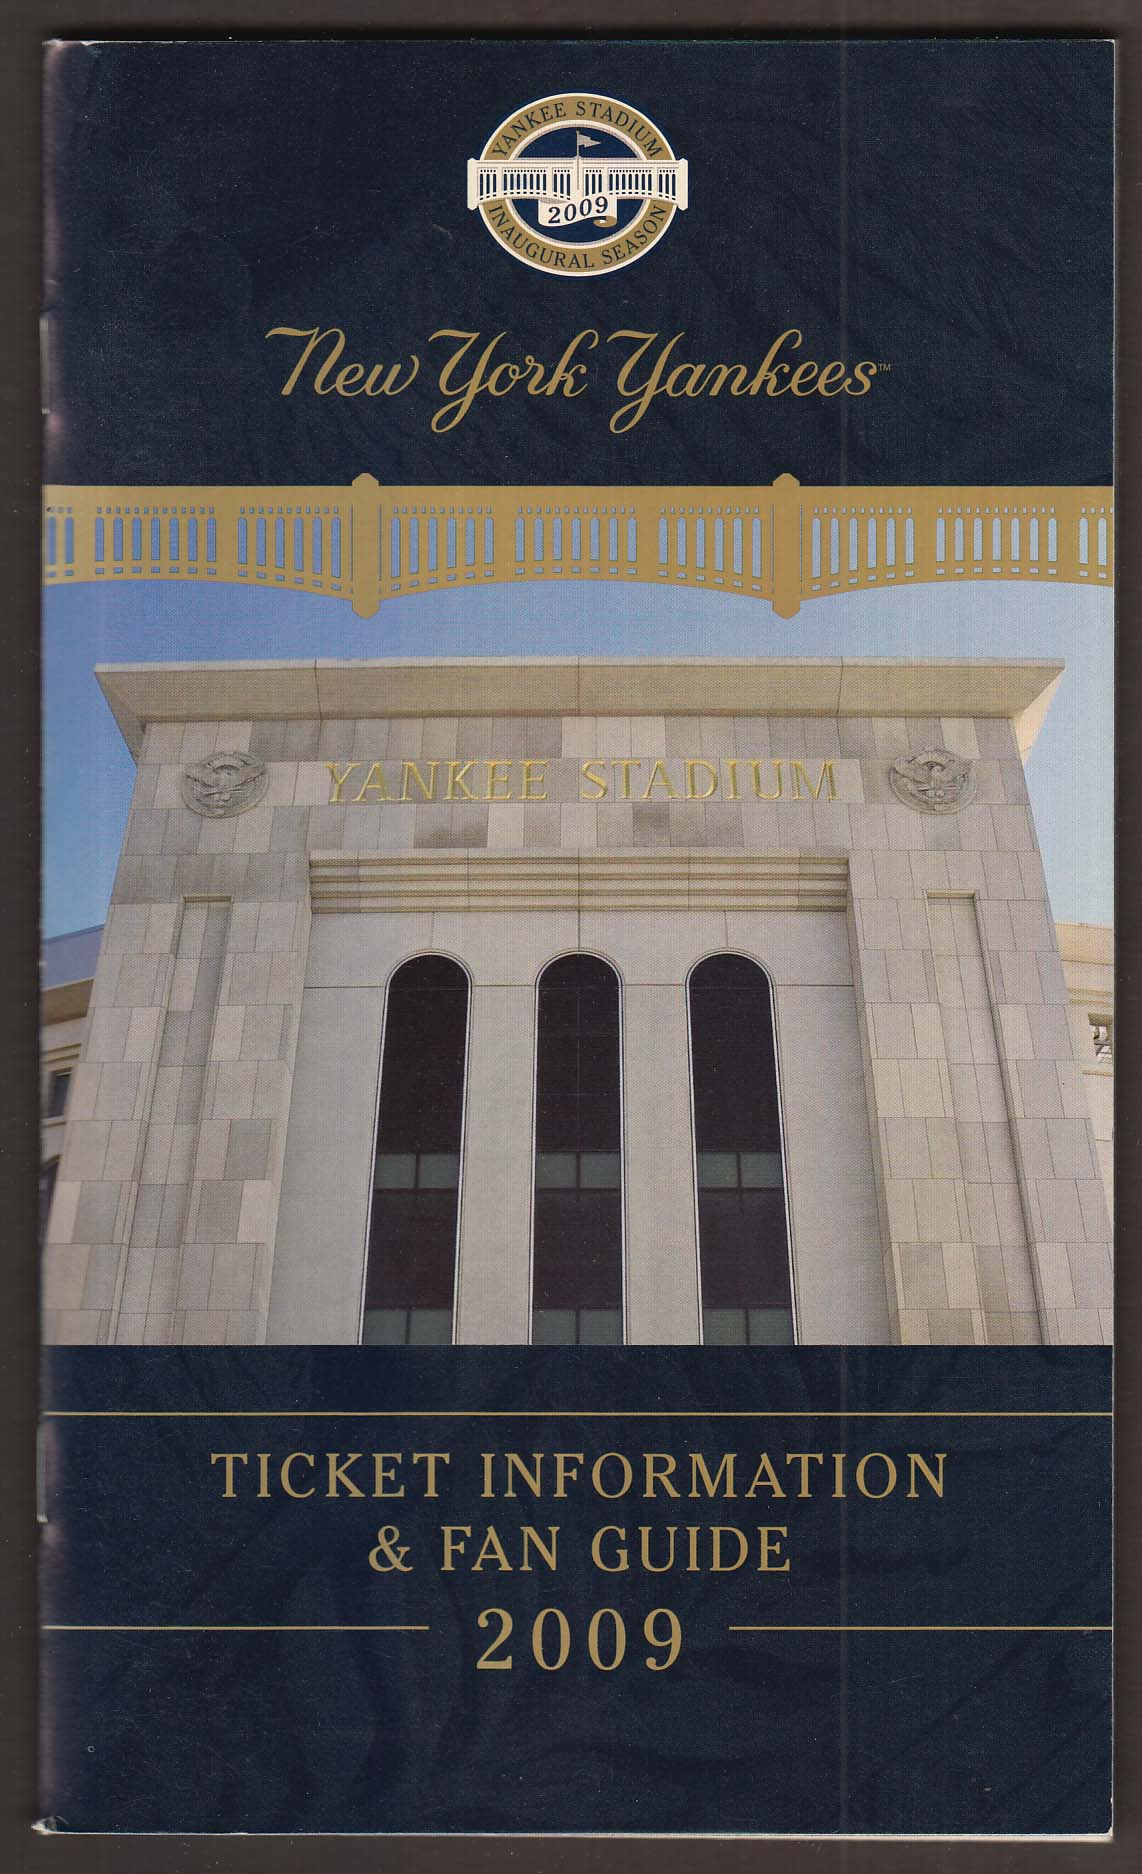 NEW YORK YANKEES Ticket Information & Fan Guide 2009